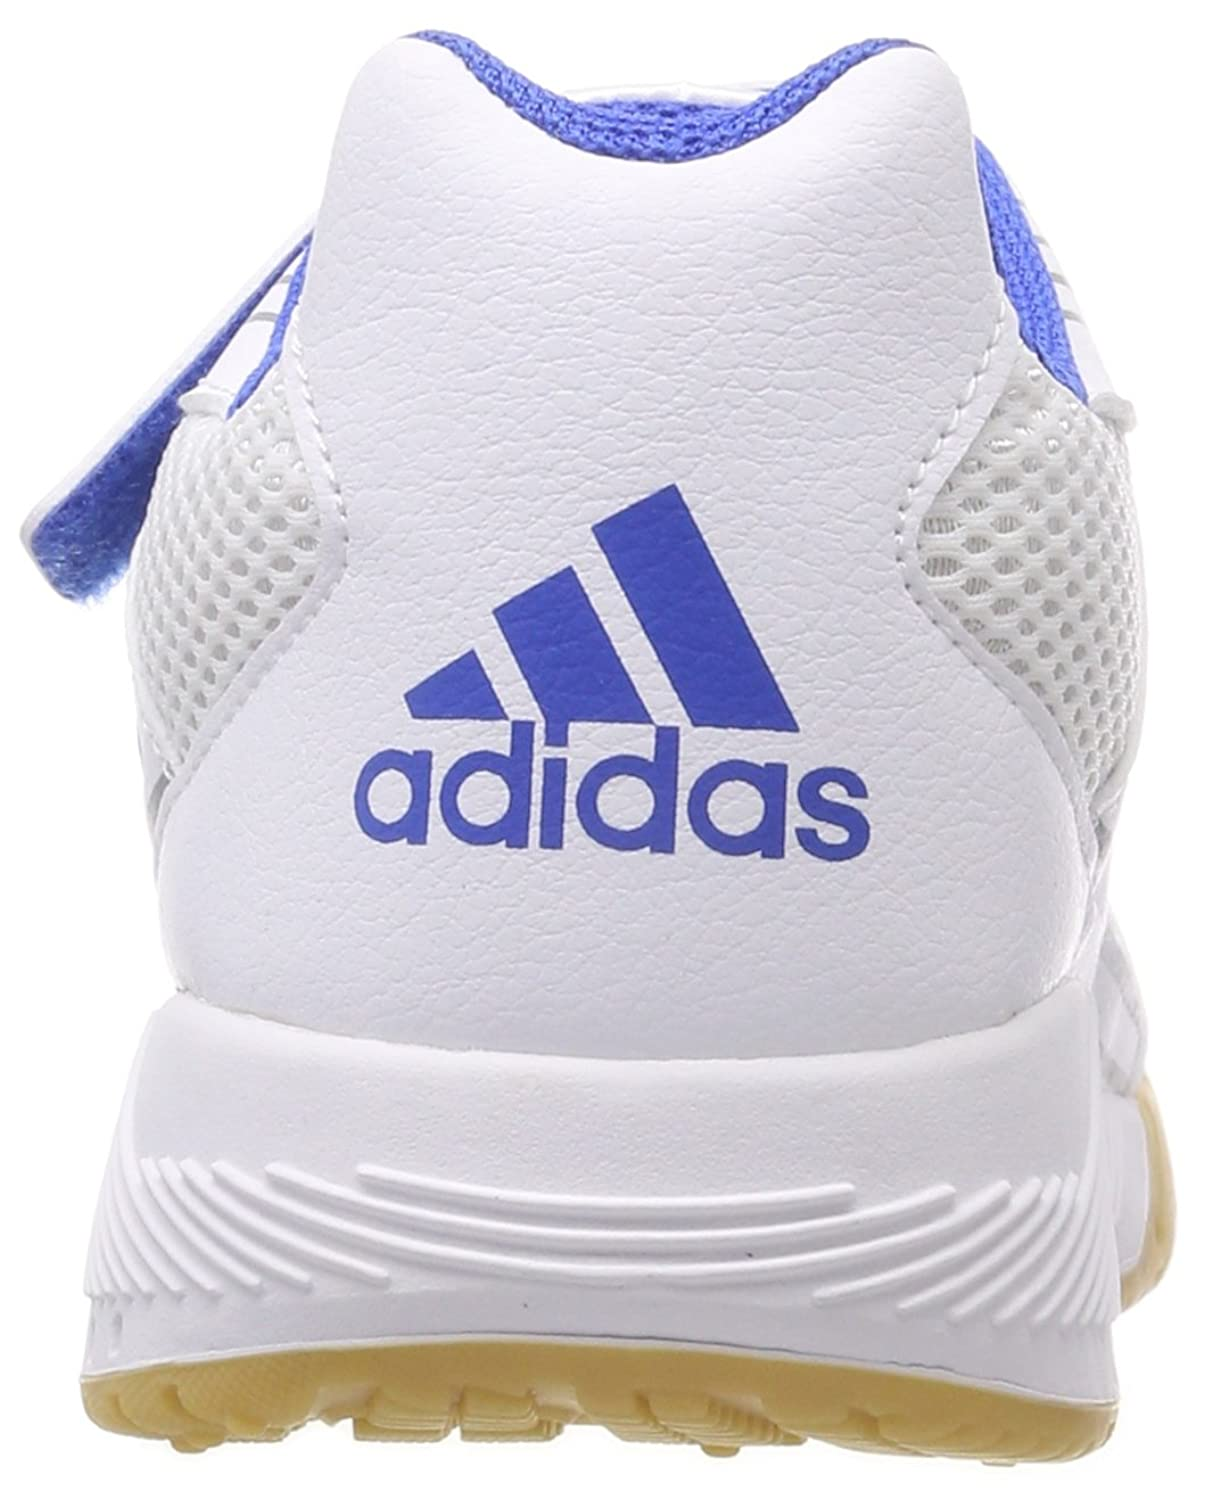 new styles 7a61d 39b2a adidas Unisex Kids  Altarun CF K Training Shoes  Amazon.co.uk  Shoes   Bags